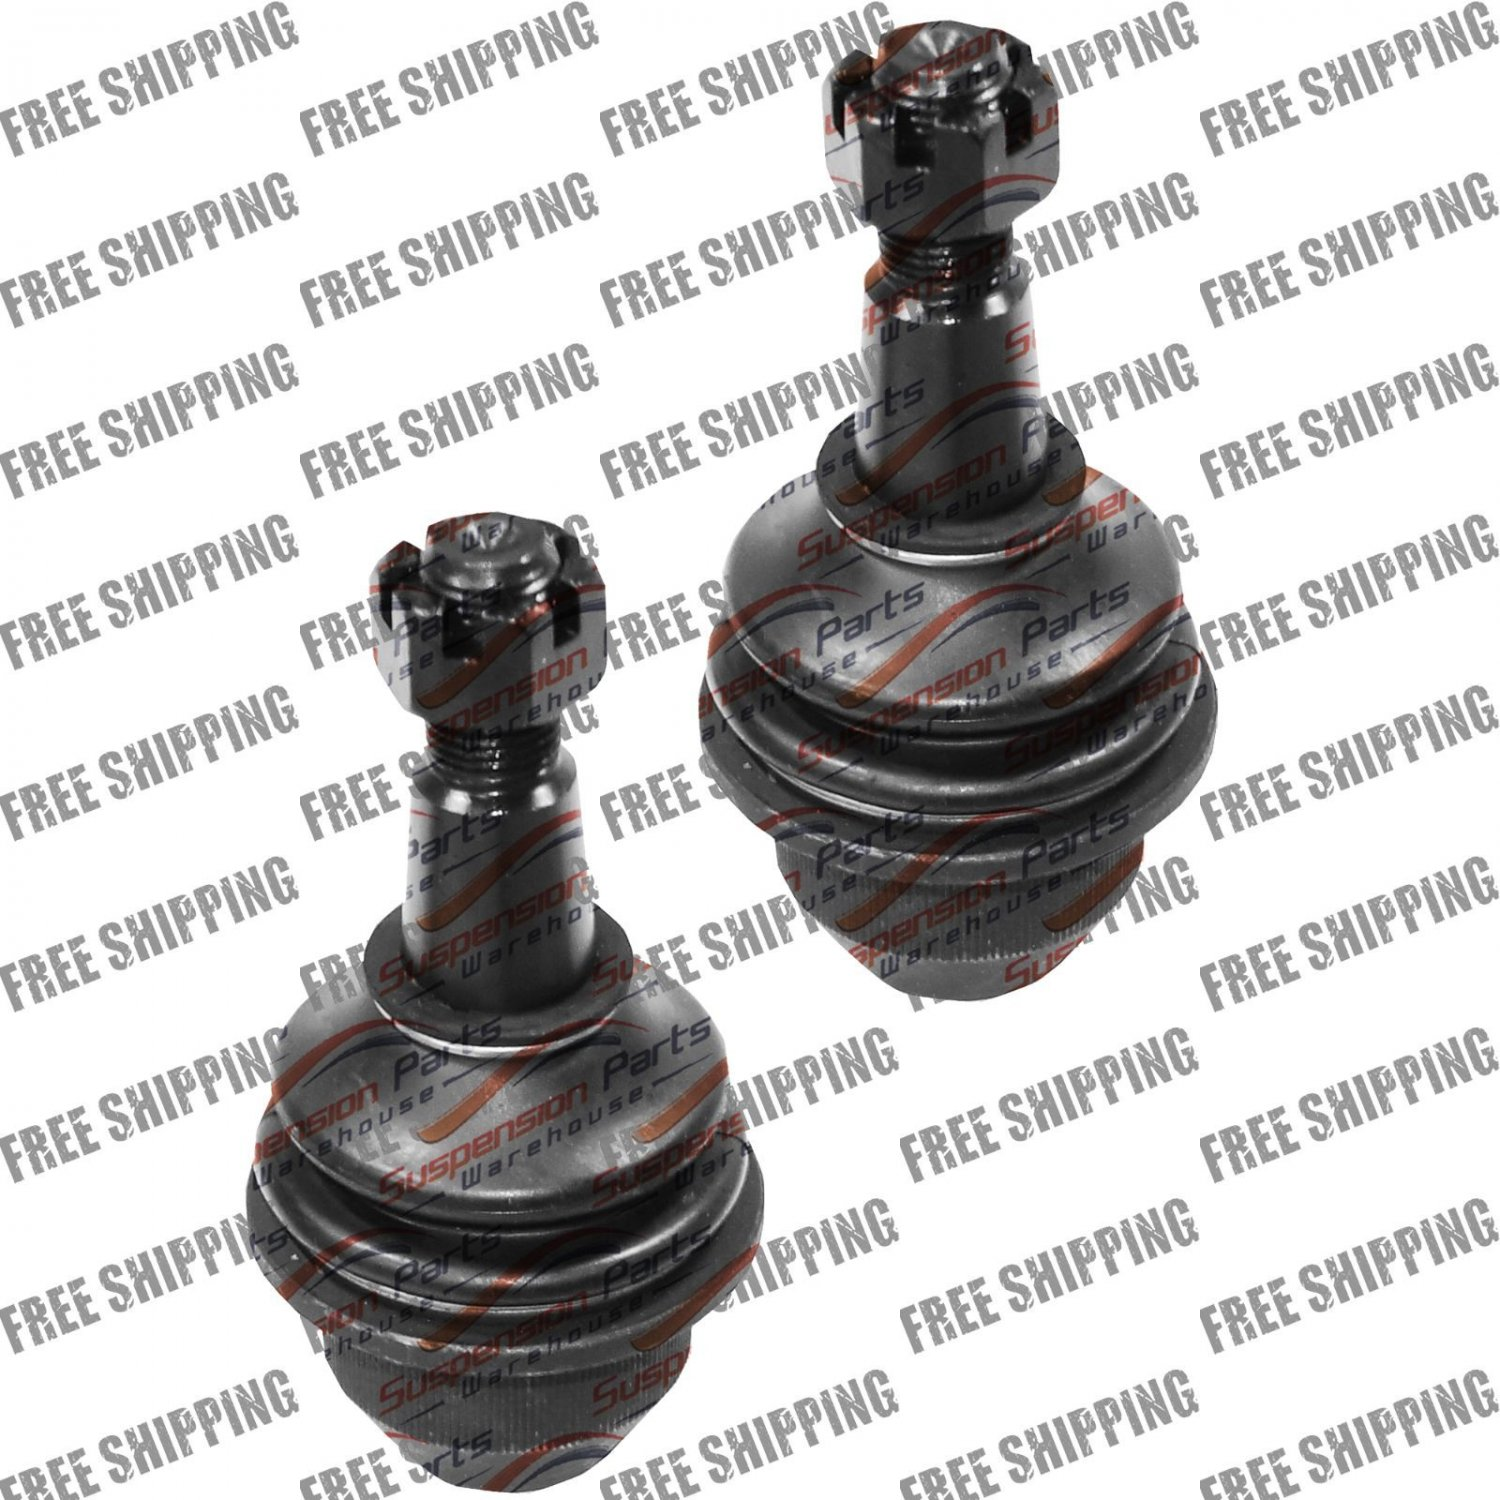 LOWER BALL JOINT 45.79MM 95-96-97-98-99 CHEVY SUBURBAN 1500 TAHOE YUKON 2WD 4WD